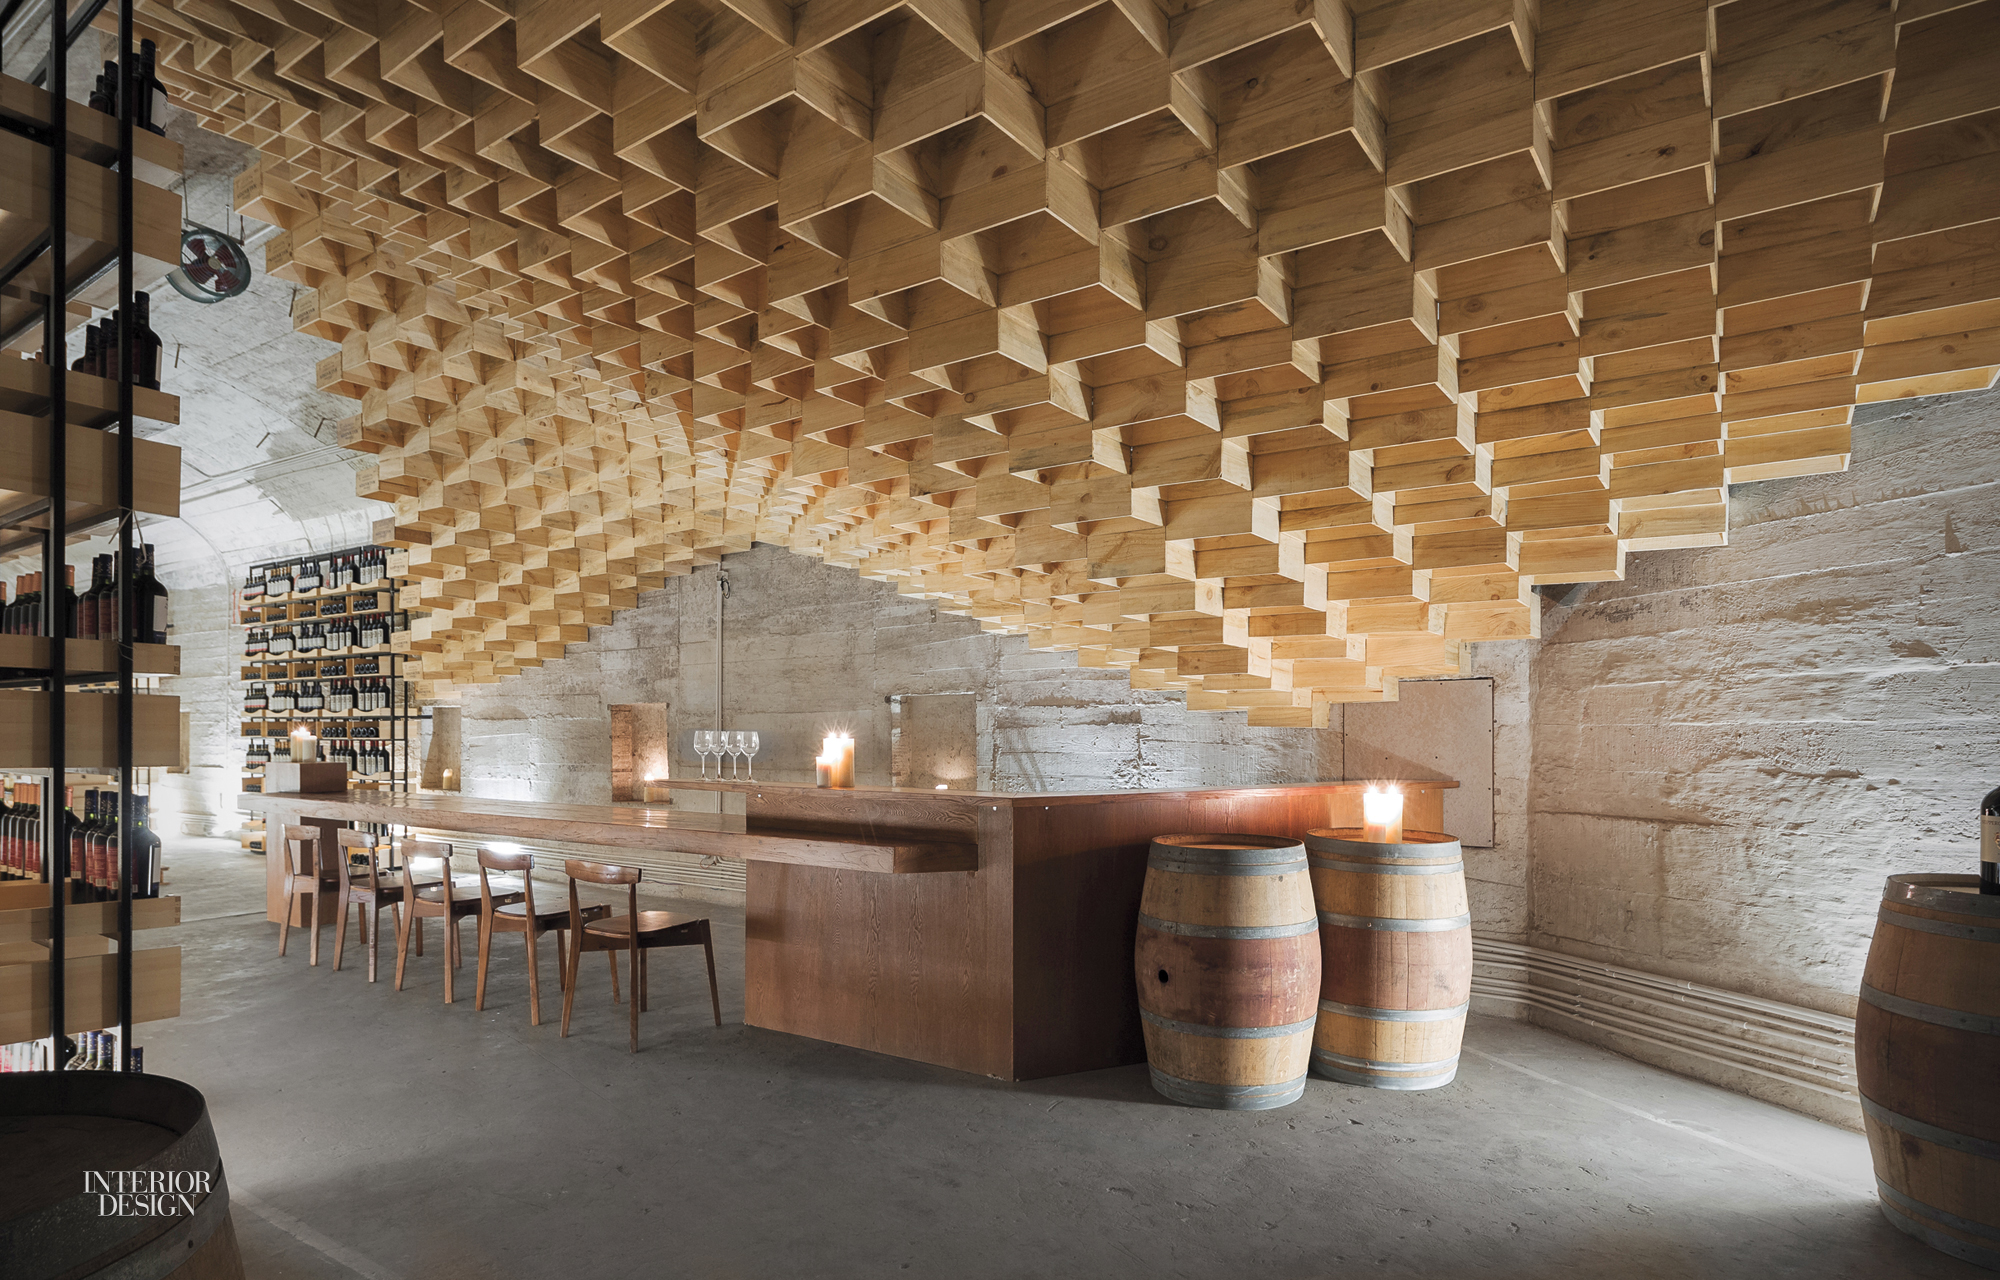 International Wine Spirits Museum By Shanghai Godolphin 2016 Best Of Year Winner For Gallery